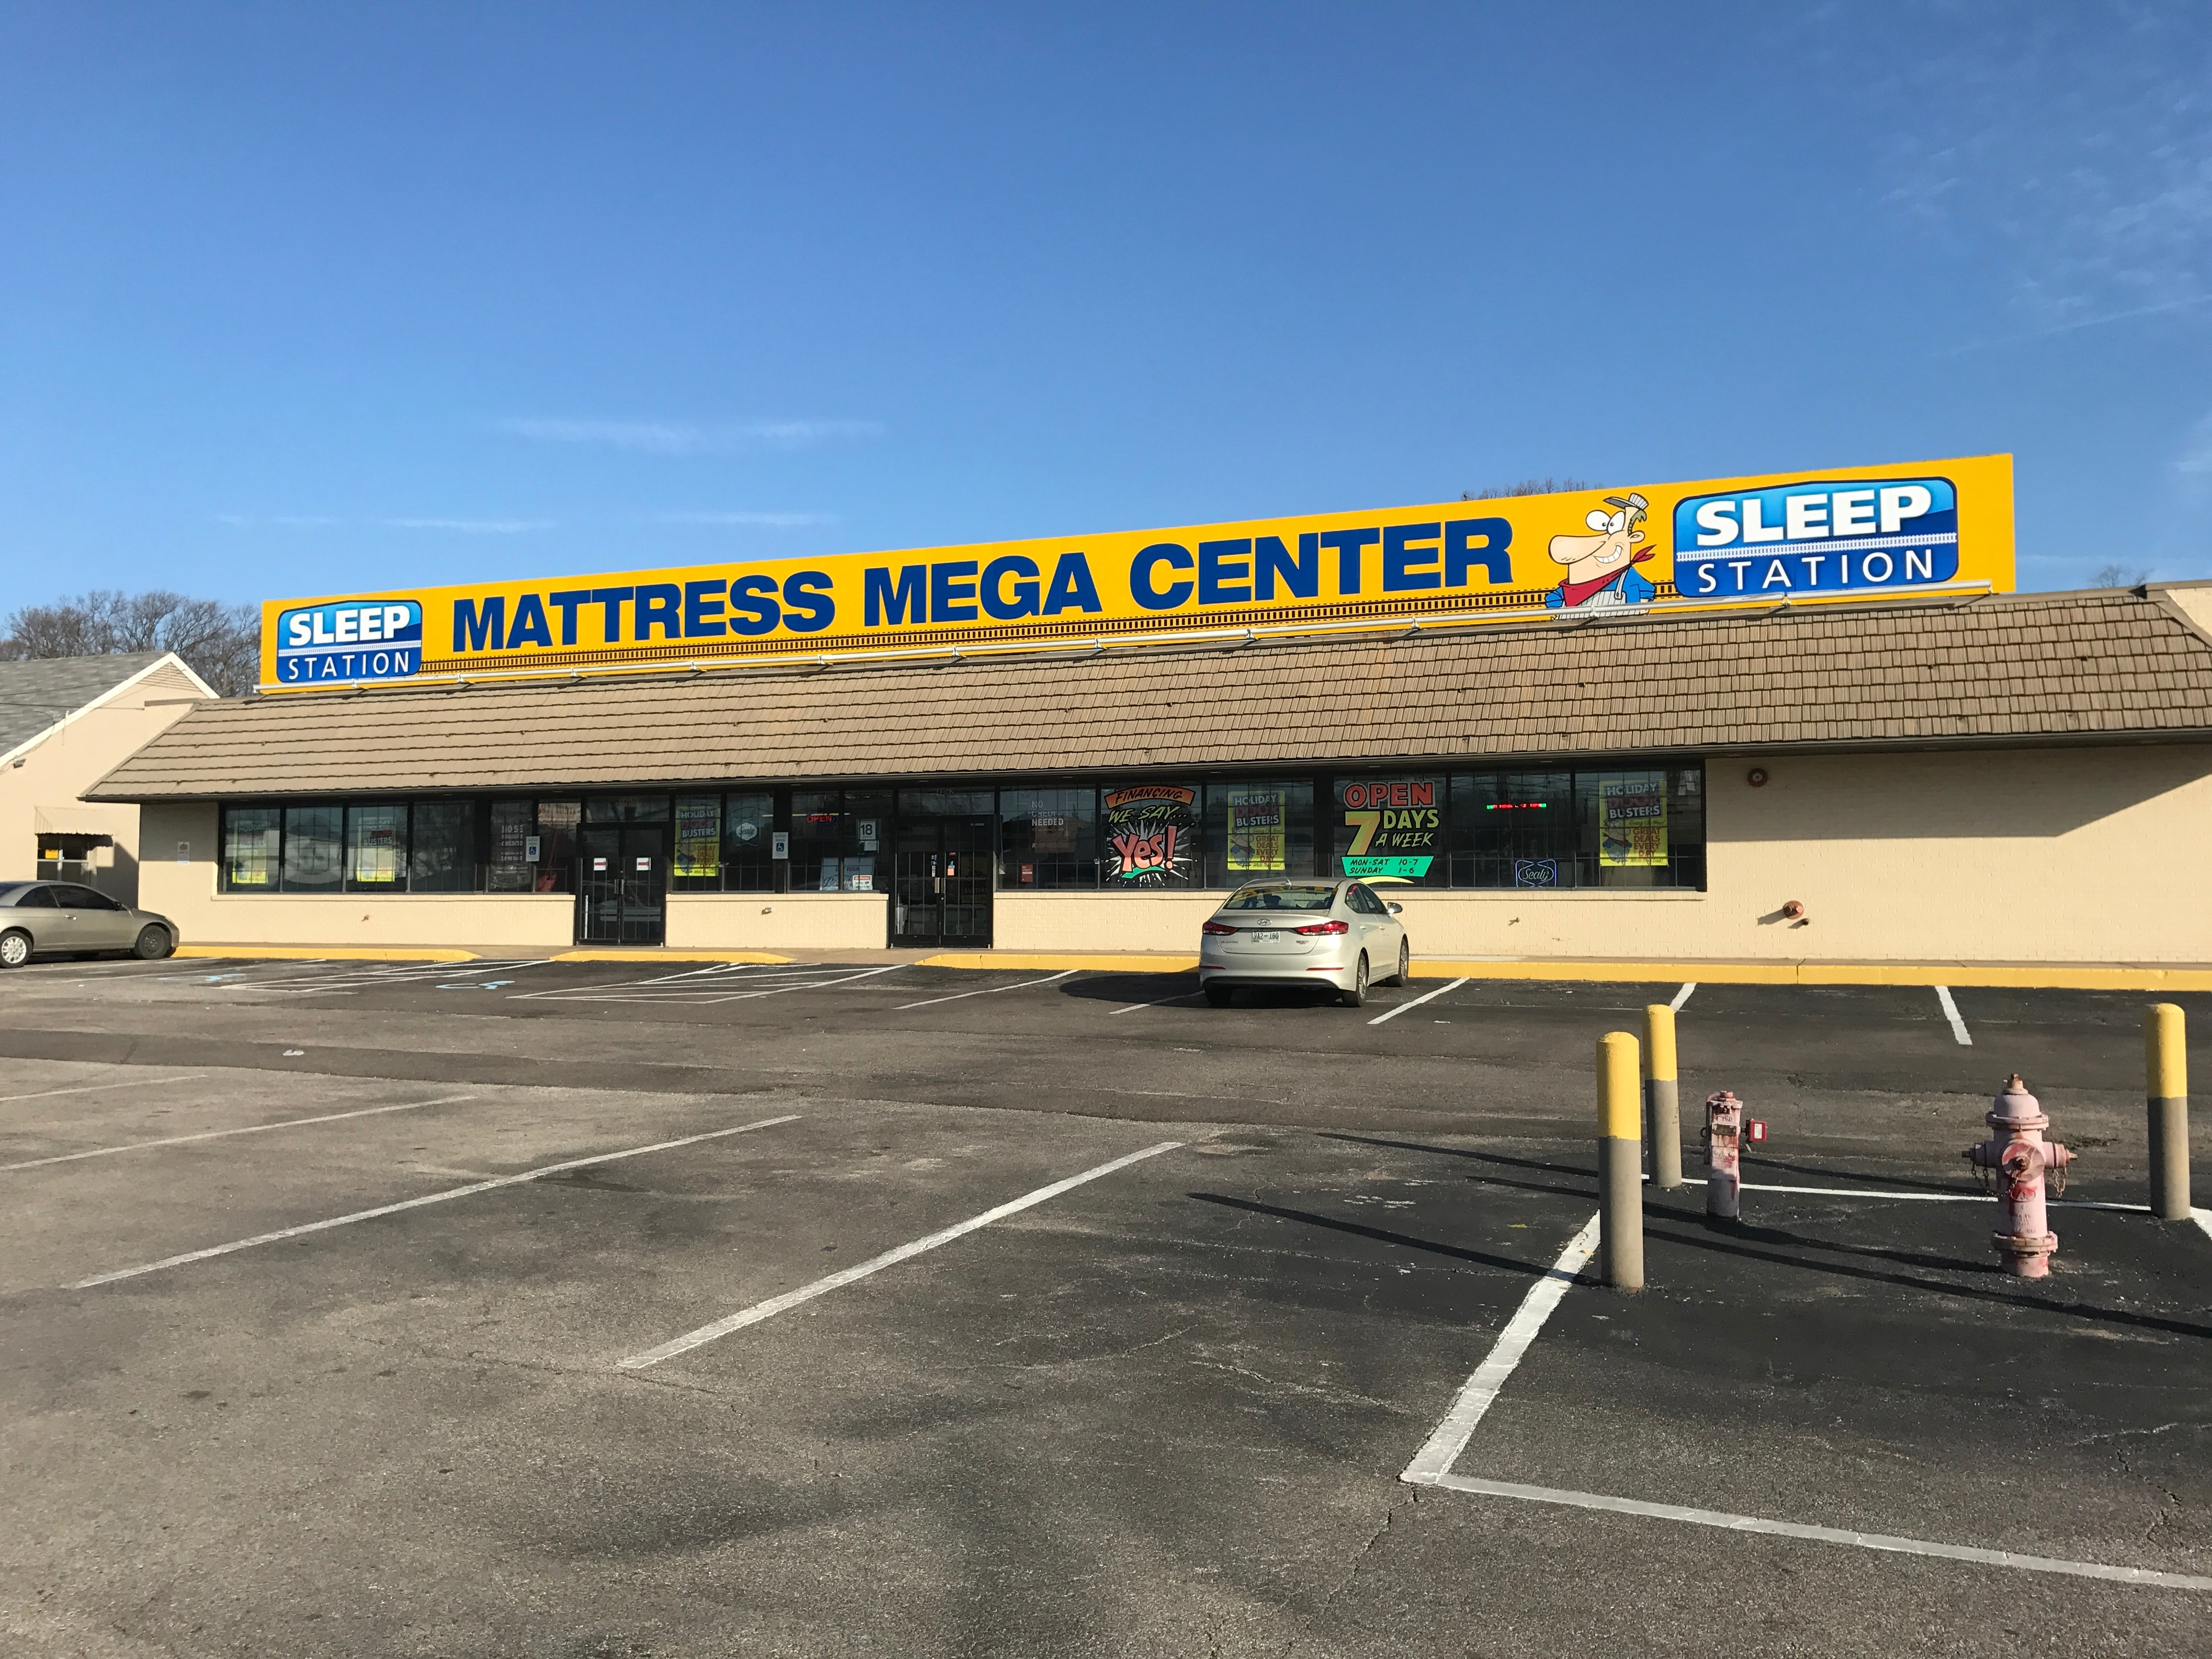 Sleep Station Mattress Outlet Coupons near me in Memphis